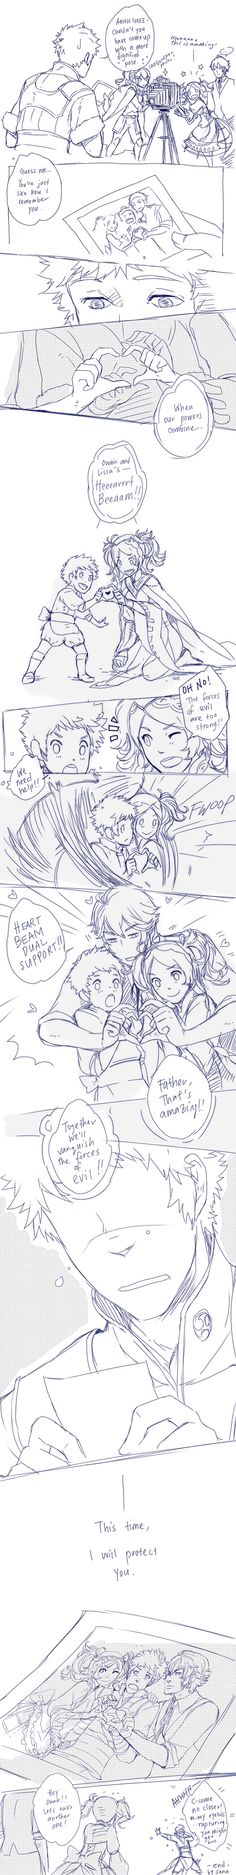 Owain's Family by alexiusSana | Photobucket